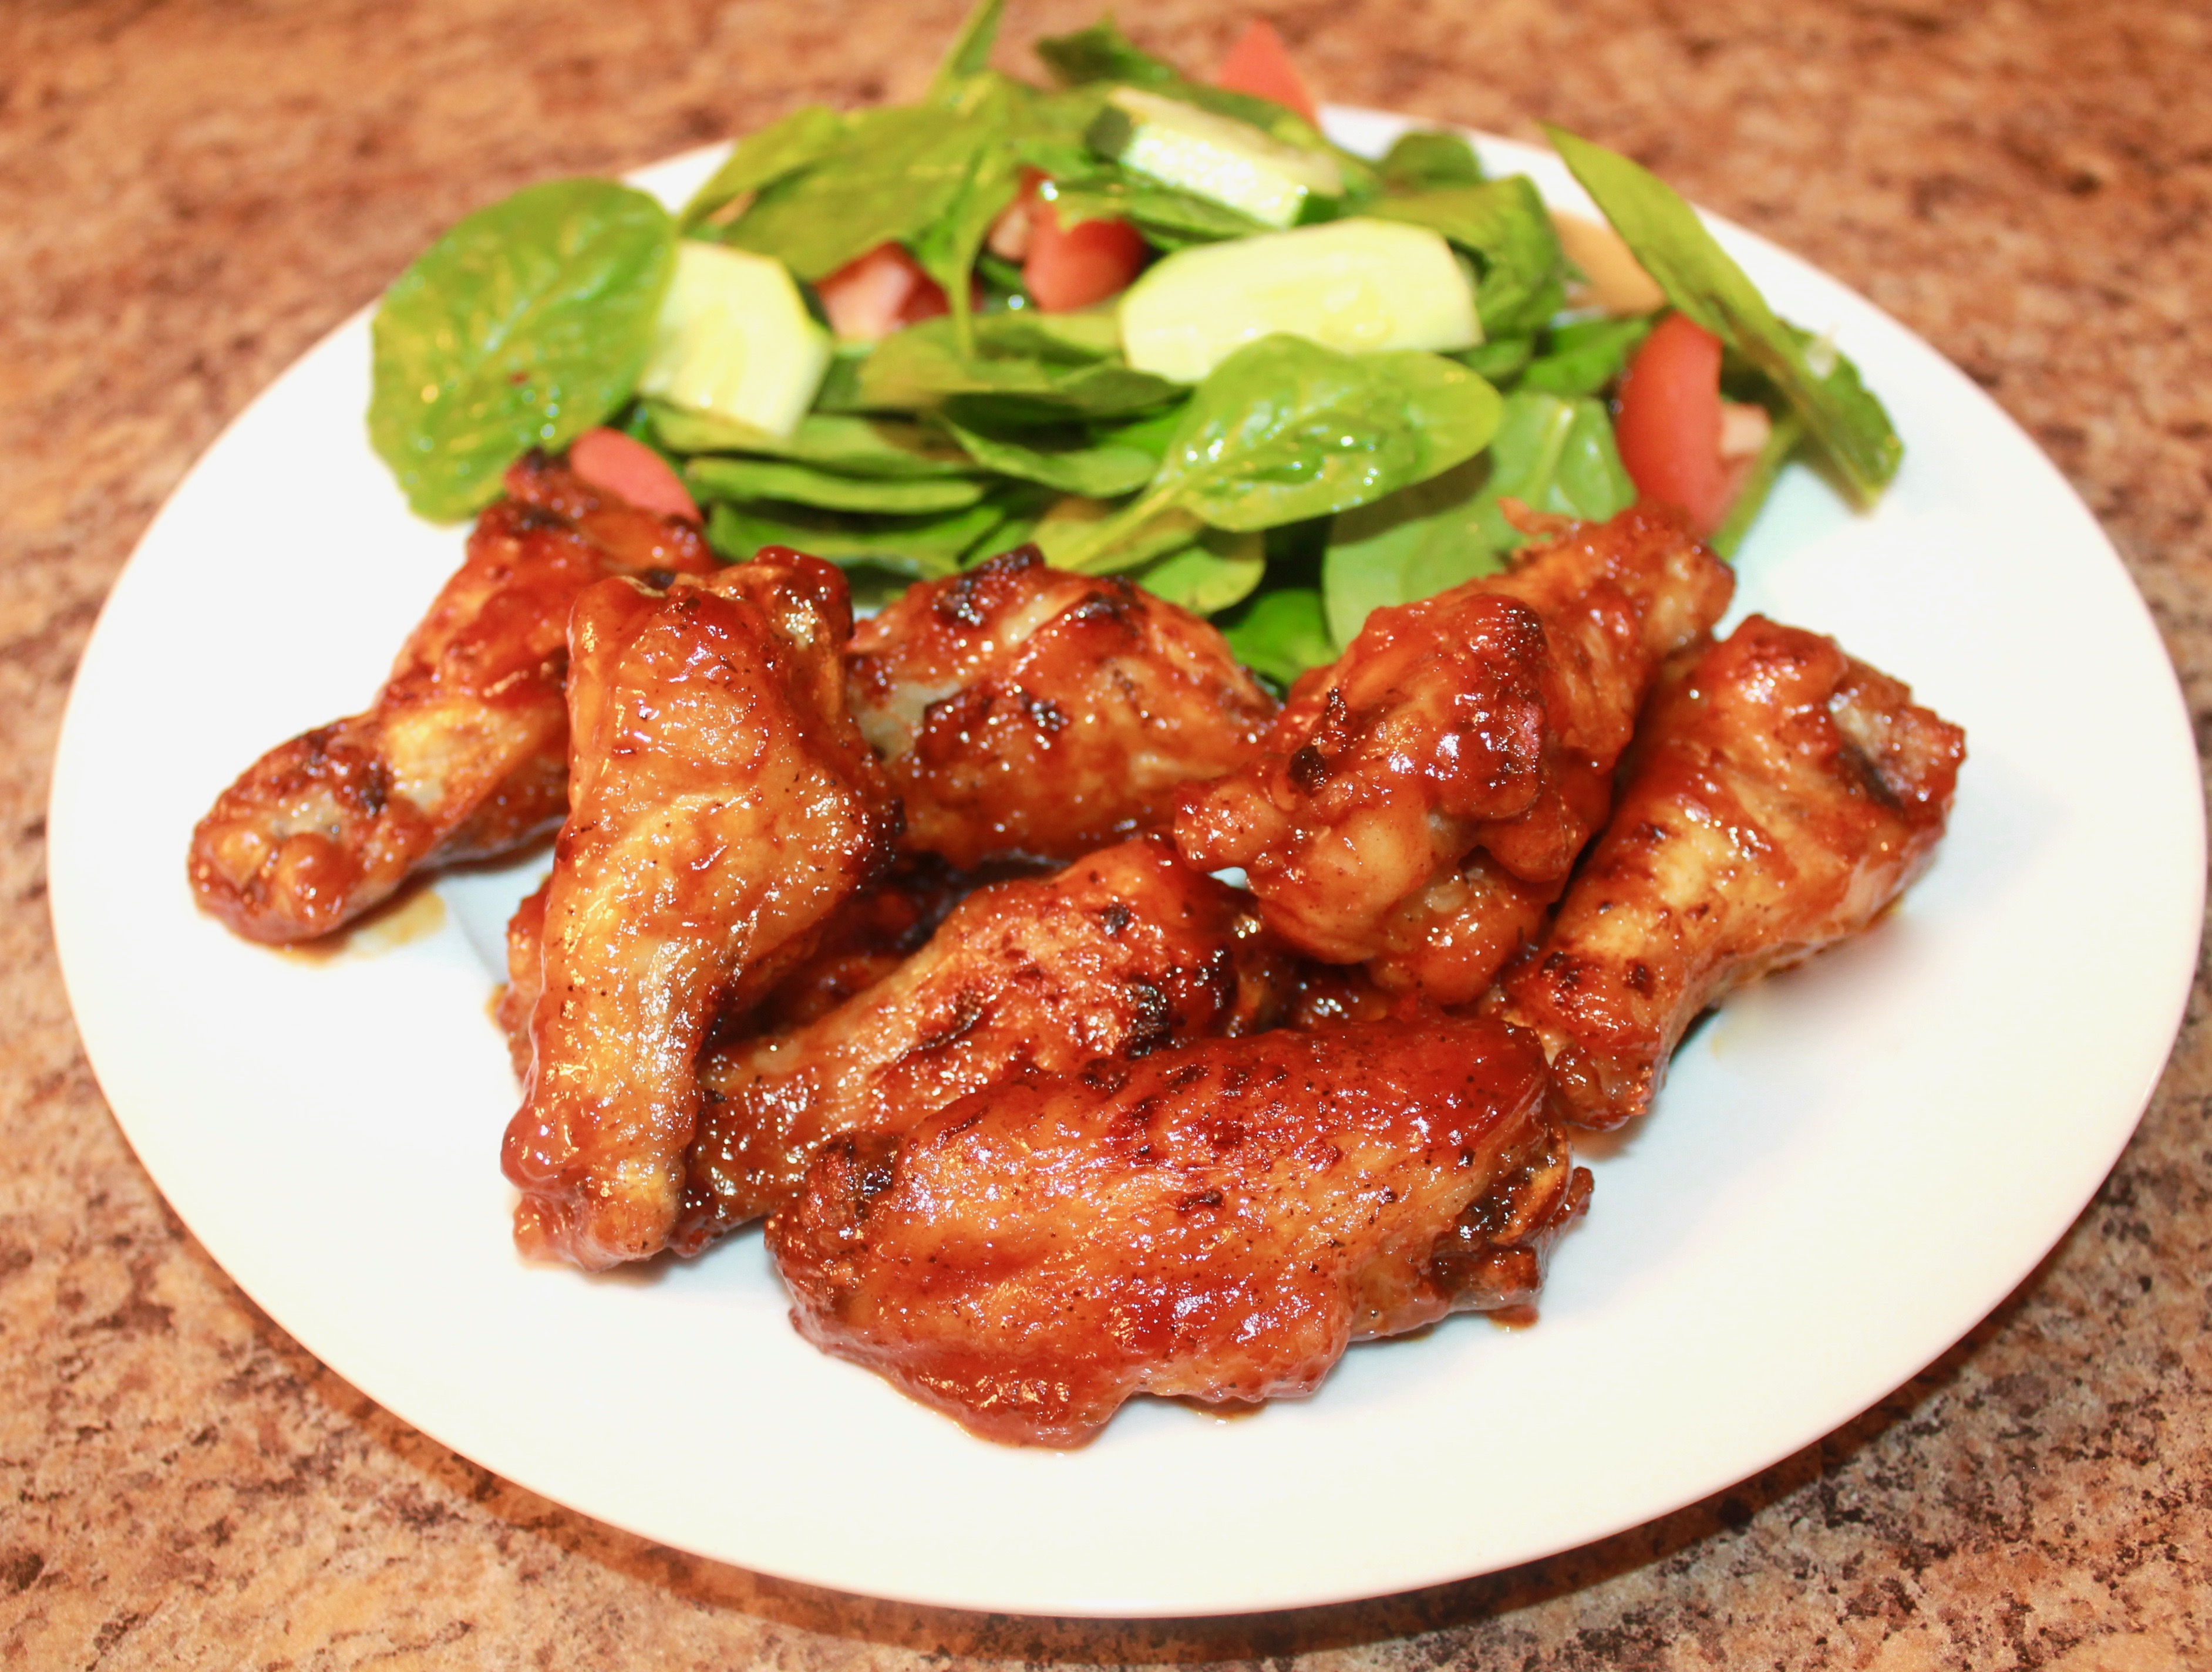 How to Make Barbecue hot wings